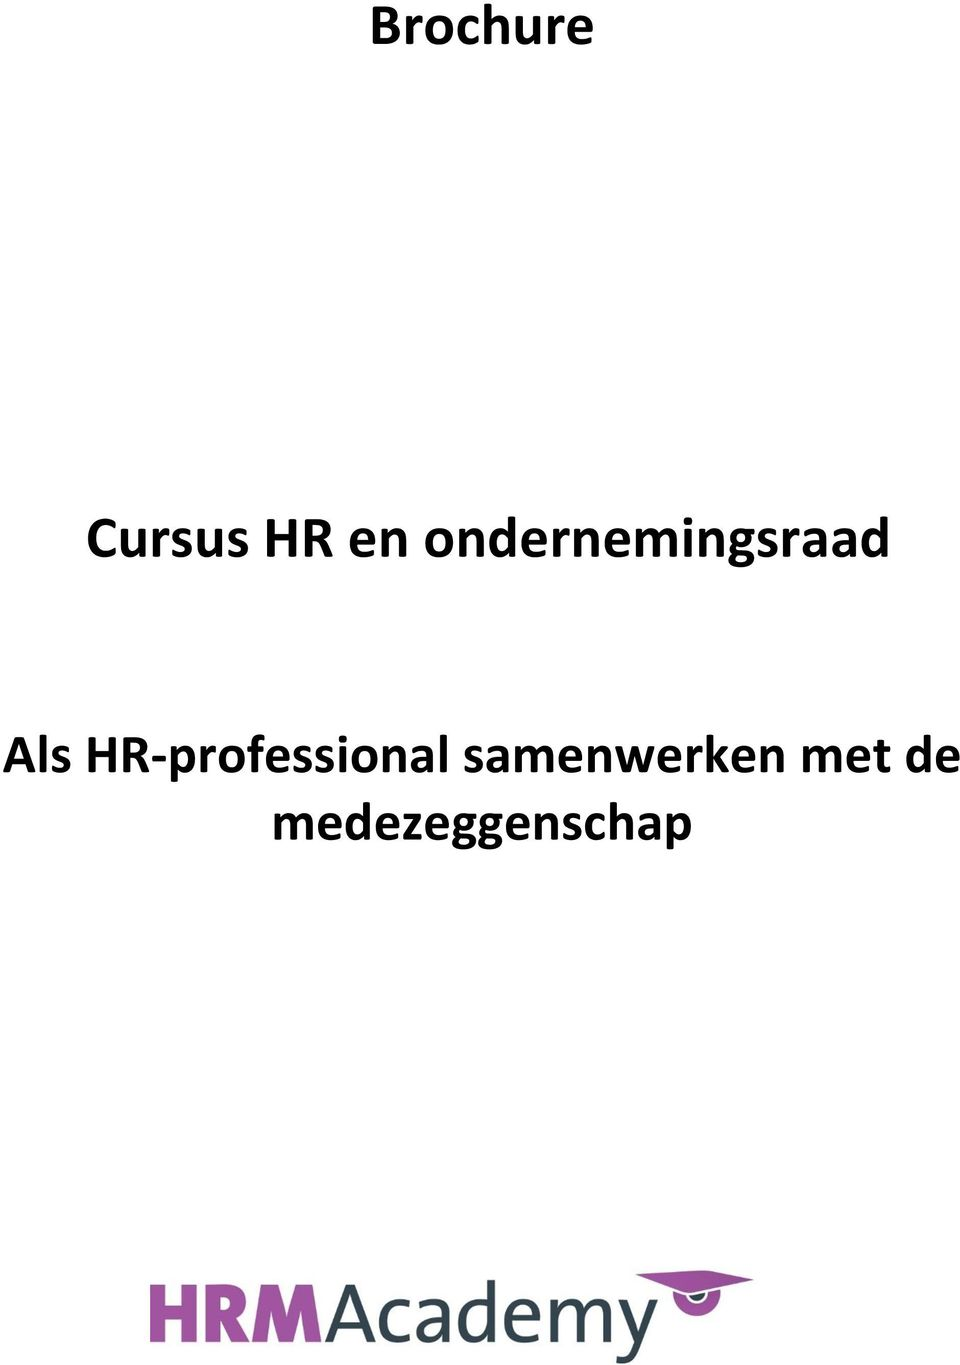 HR-professional